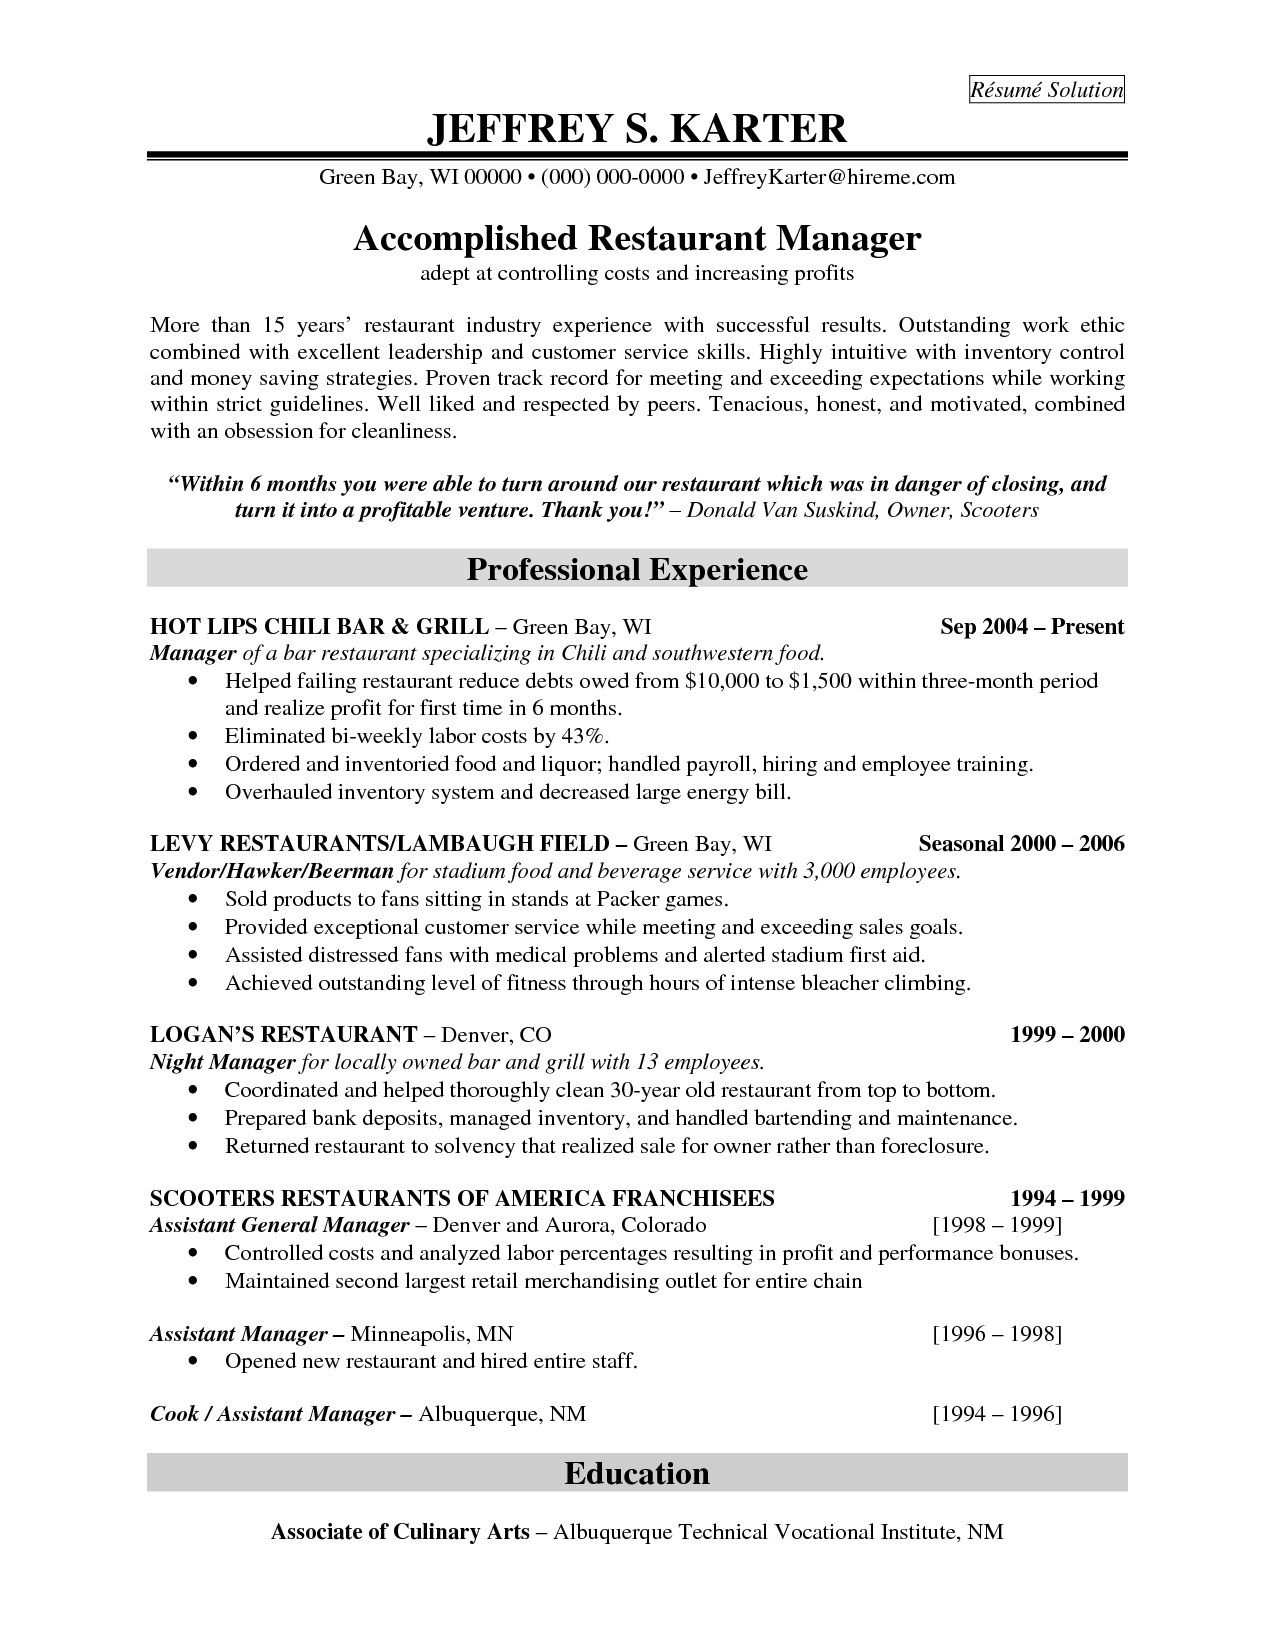 Professional Experience For Accomplidhed Restaurant Manager Resume ...